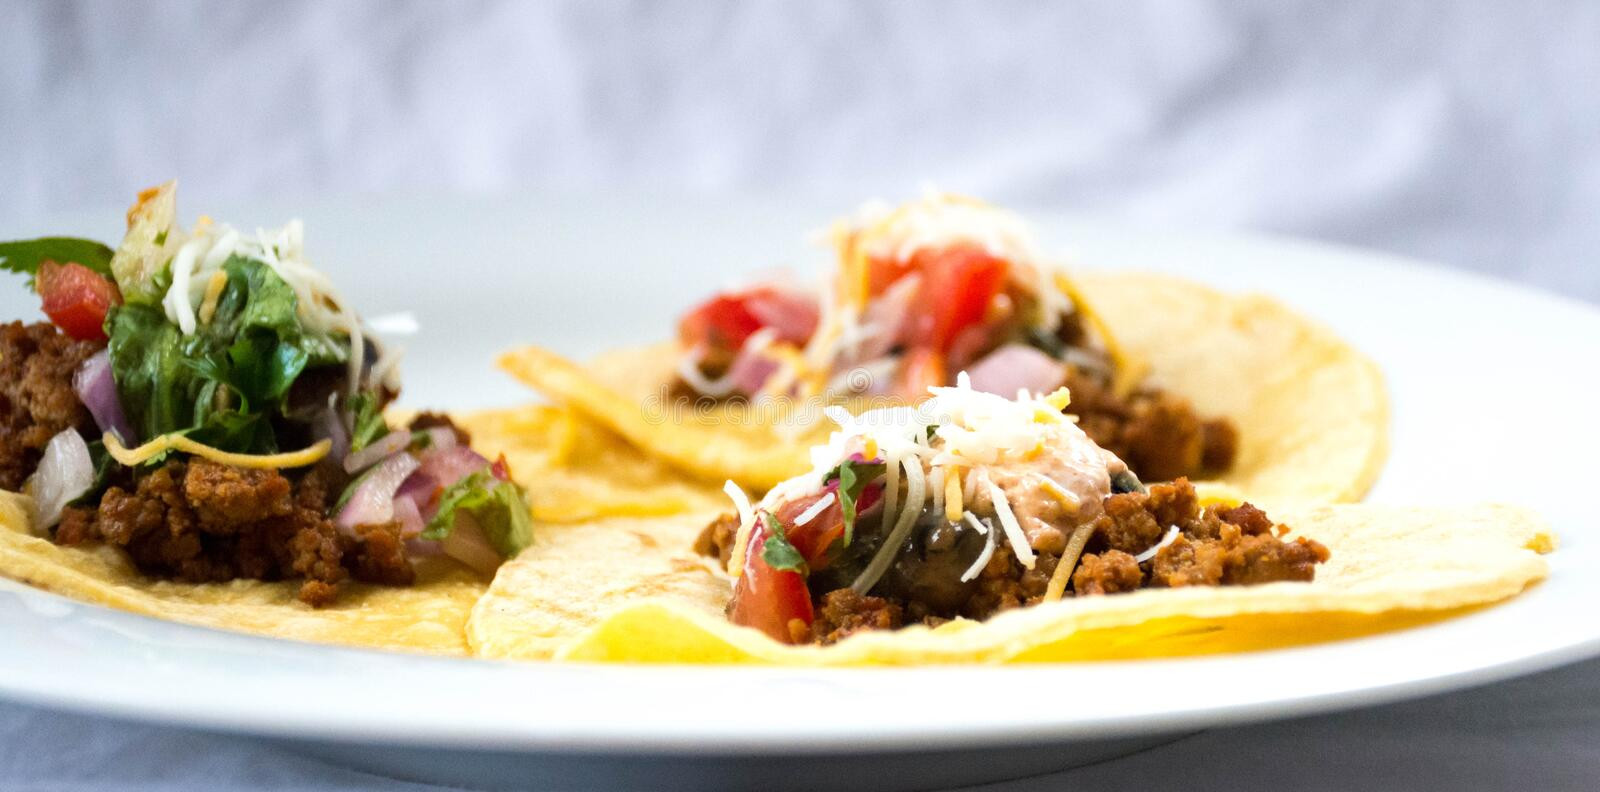 Soft Tacos. White Corn Tortilla served with ground Turkey, guacamole, and sprinkled with cheese. Soft tacos with white corn royalty free stock image